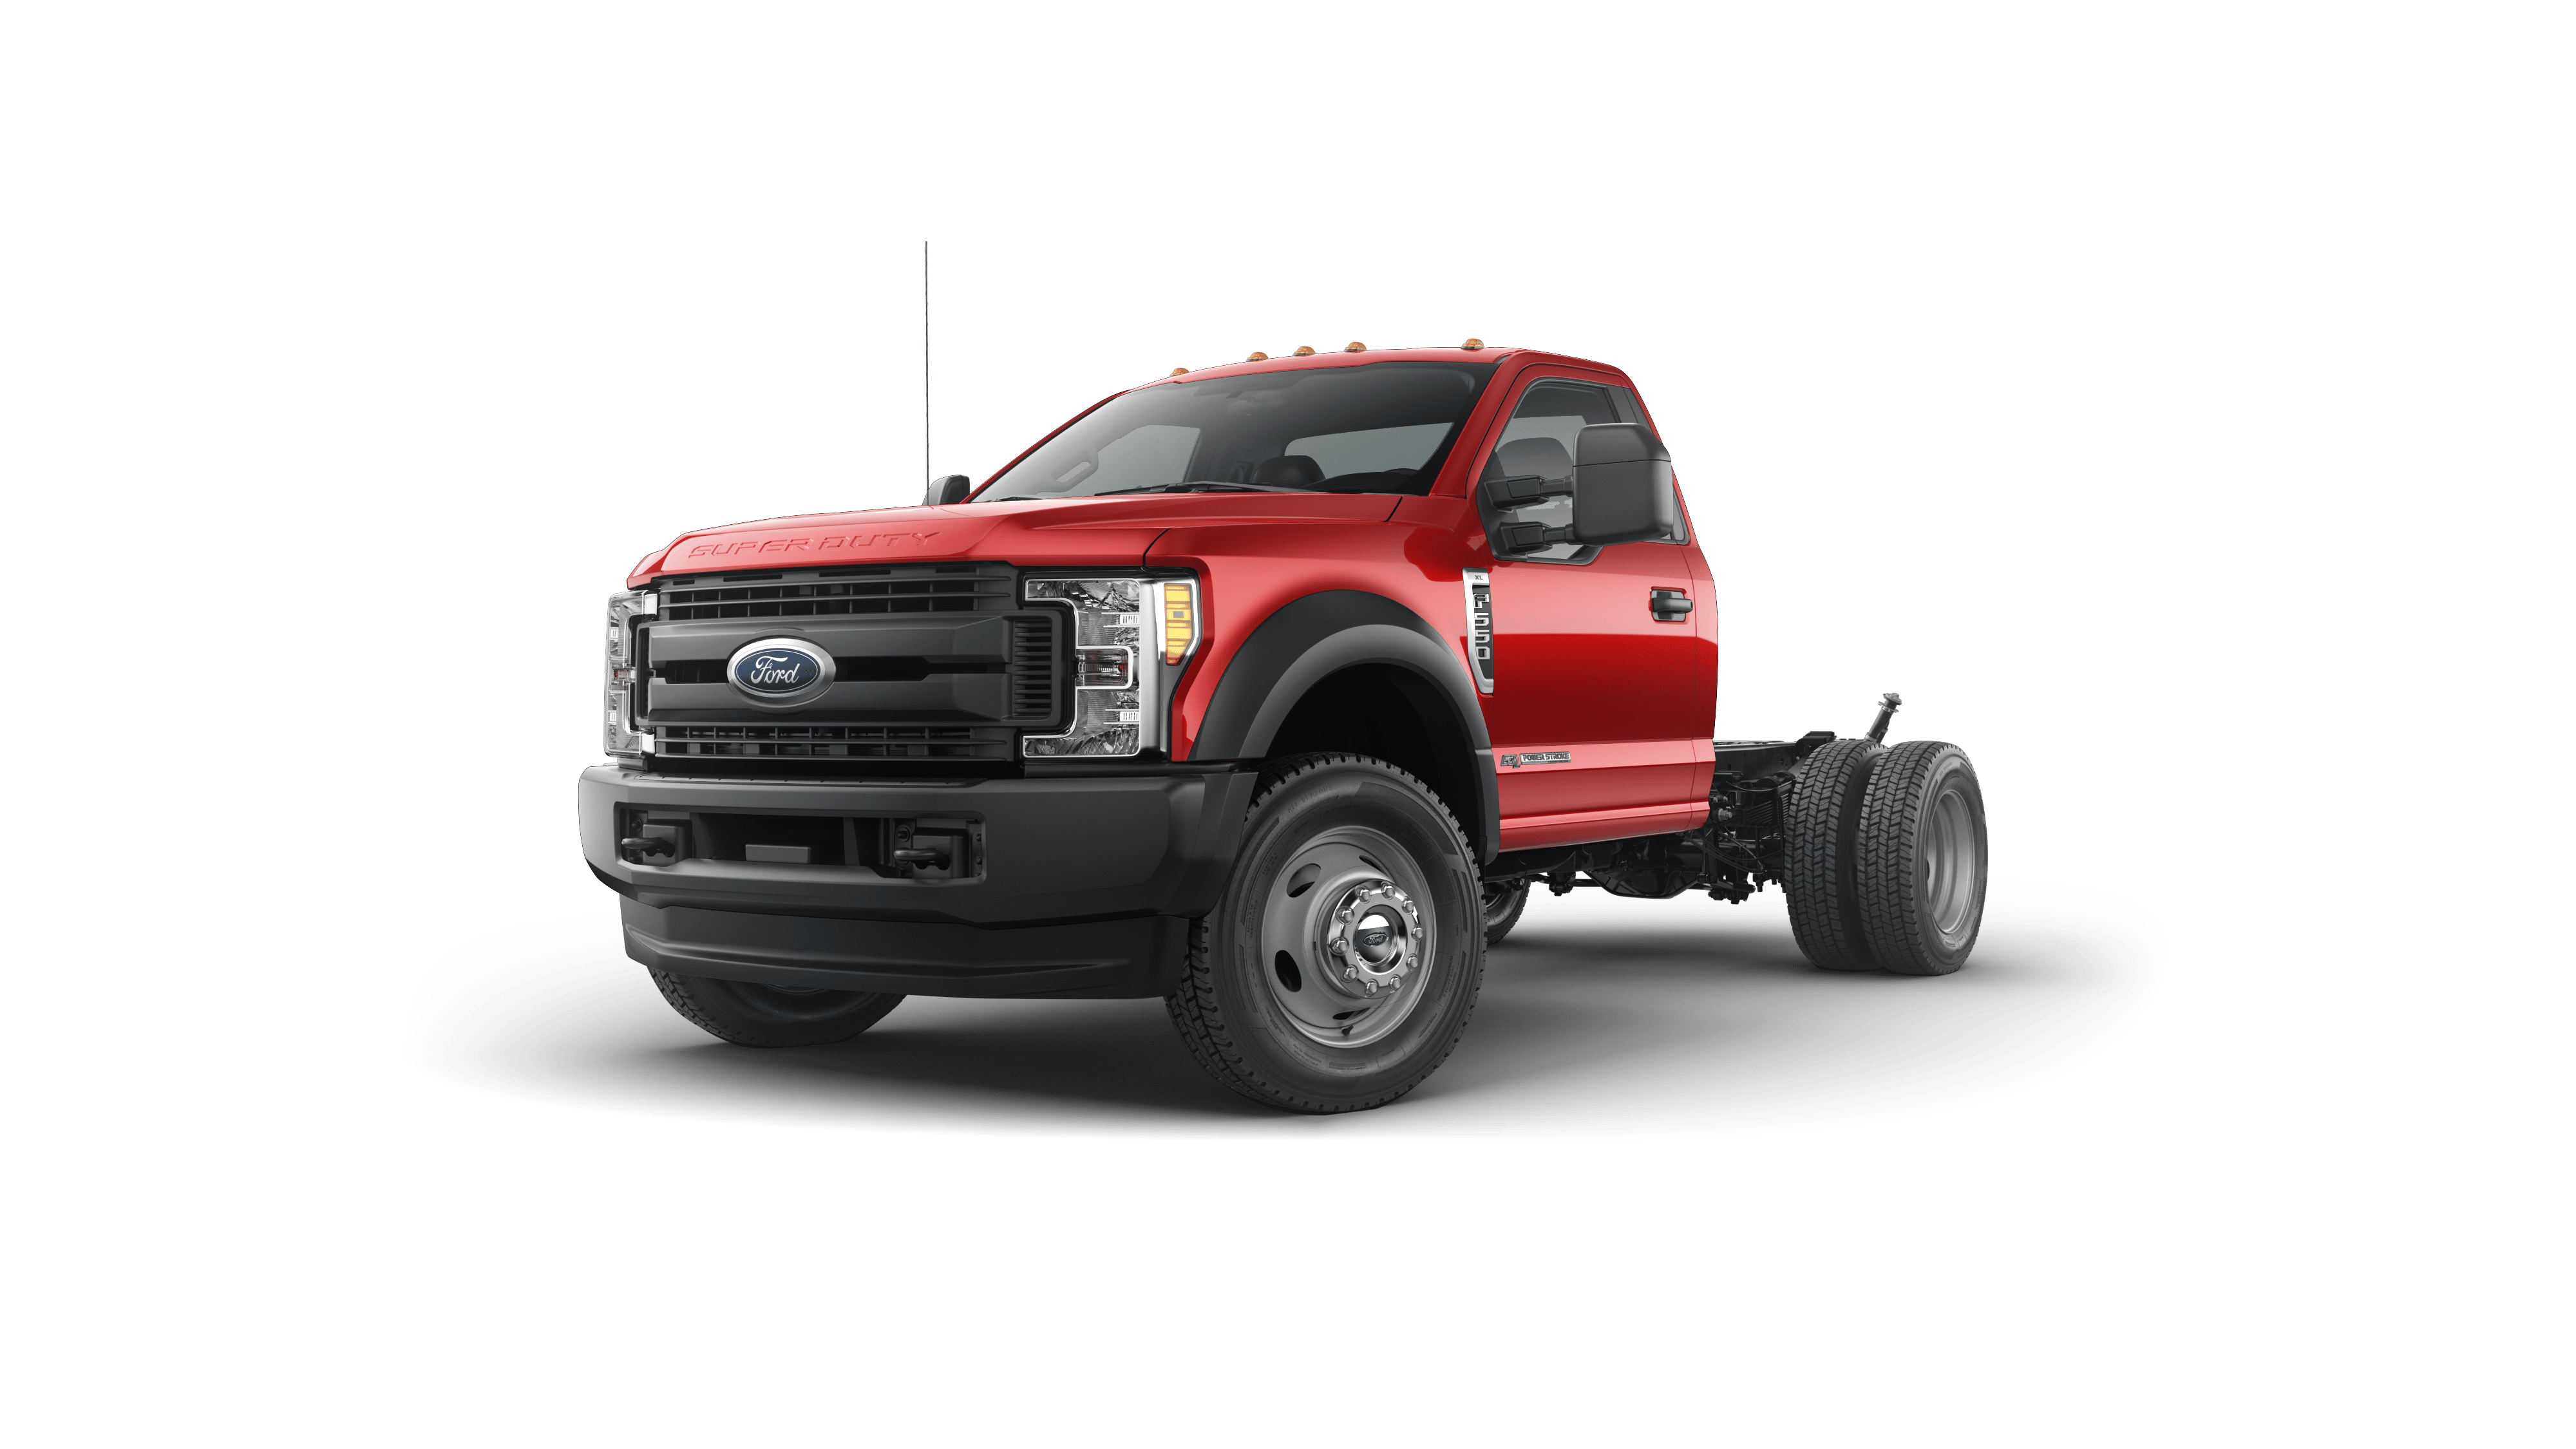 2019 Ford Super Duty F-550 DRW Vehicle Photo in Souderton, PA 18964-1038